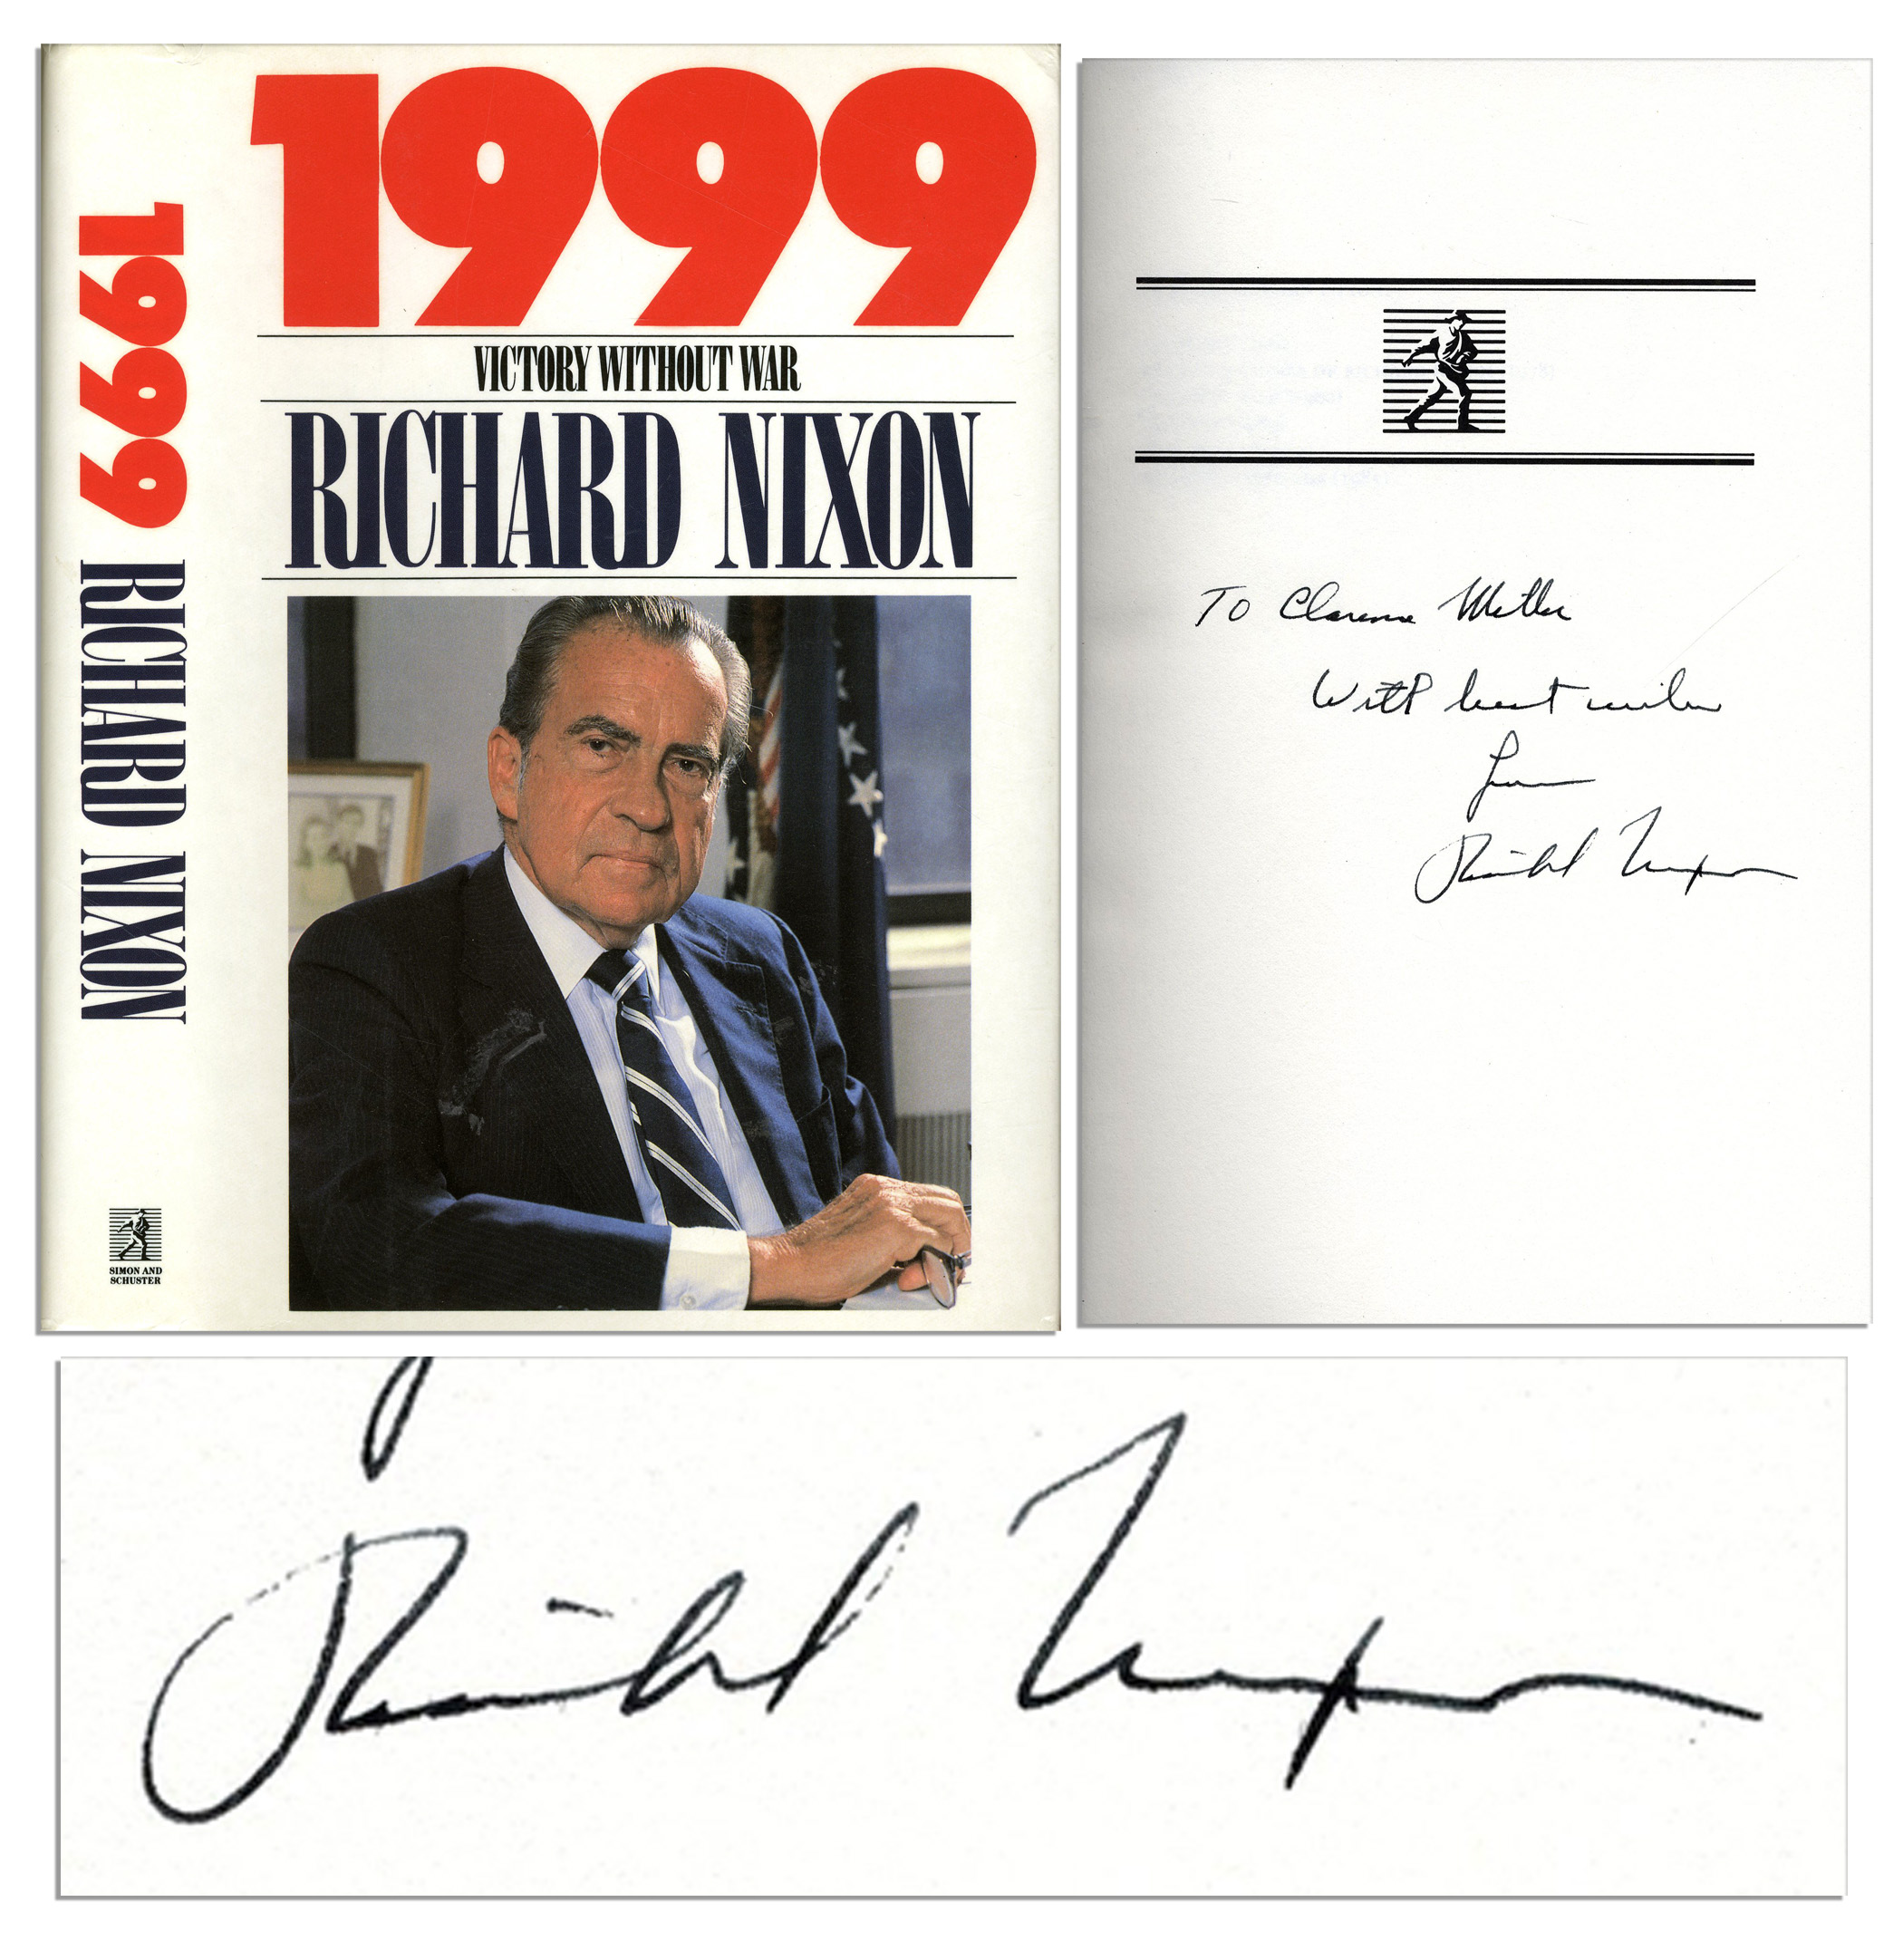 richard nixon essay custom university admission essay drexel nixon including videos interesting articles pictures historical features and more richard nixon was the thirty seventh president of the united states